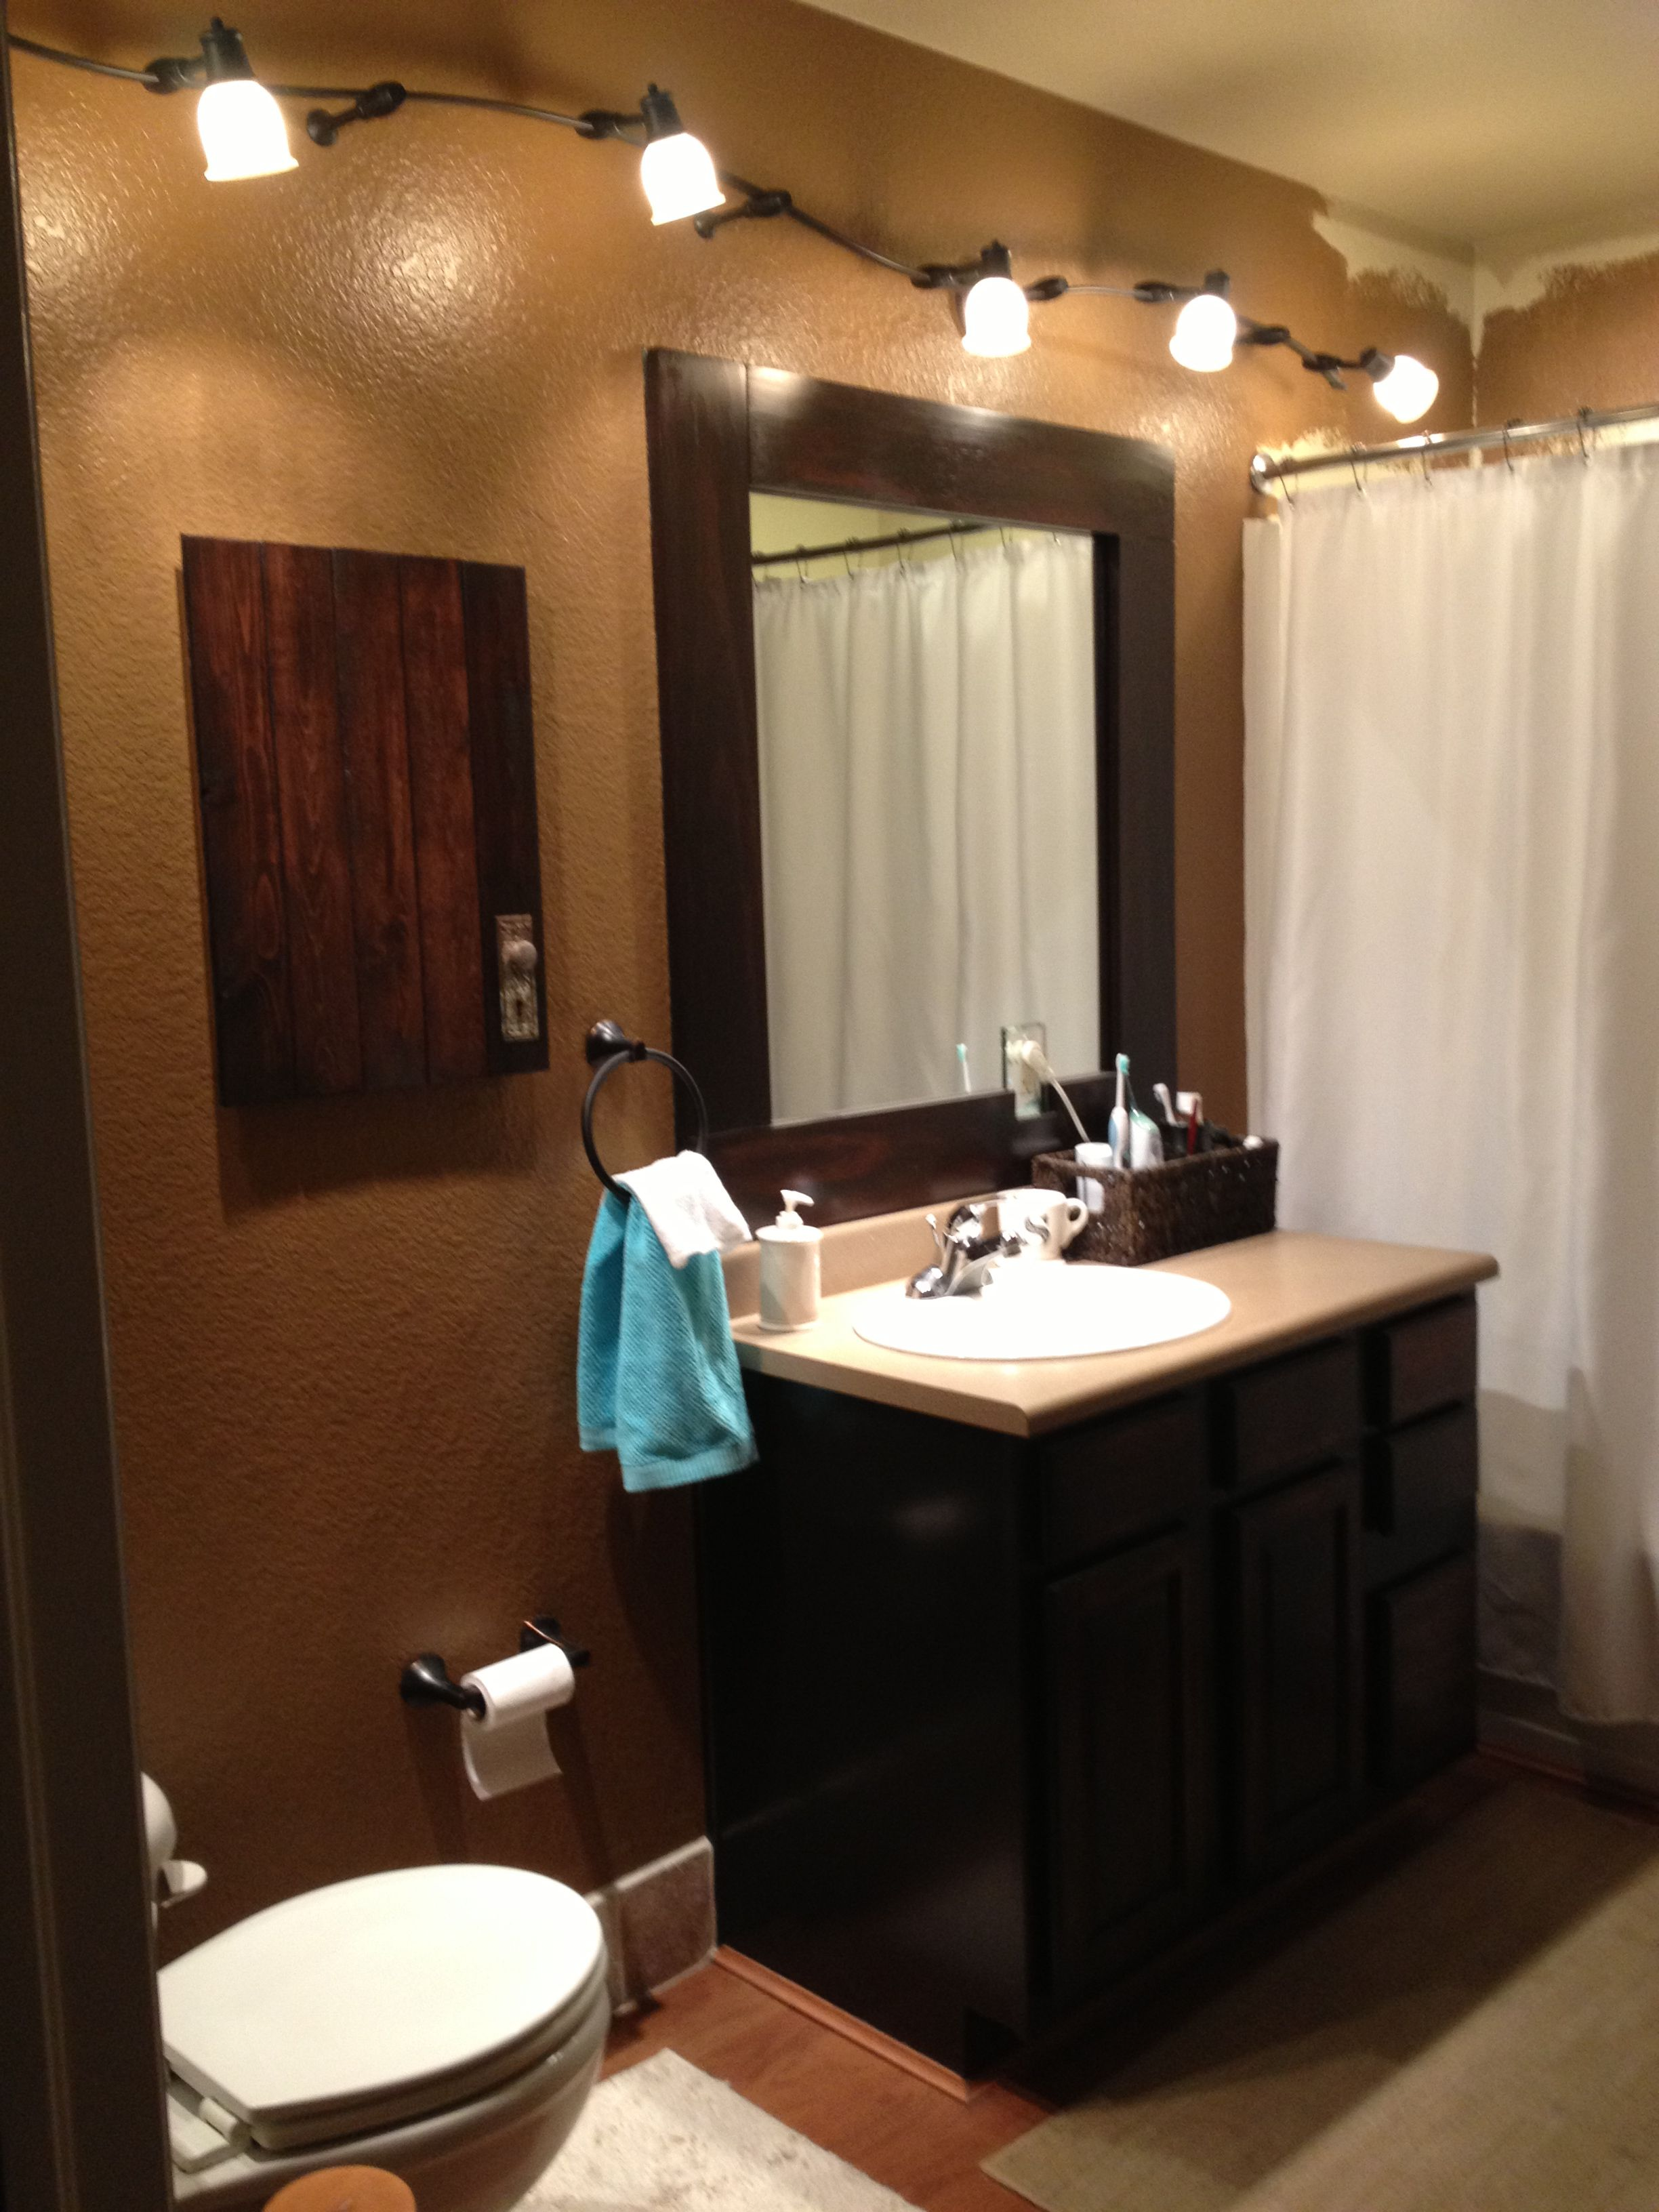 Bathroom Mirror Java java gel stain over oak cabinets with a java-trimmed mirror